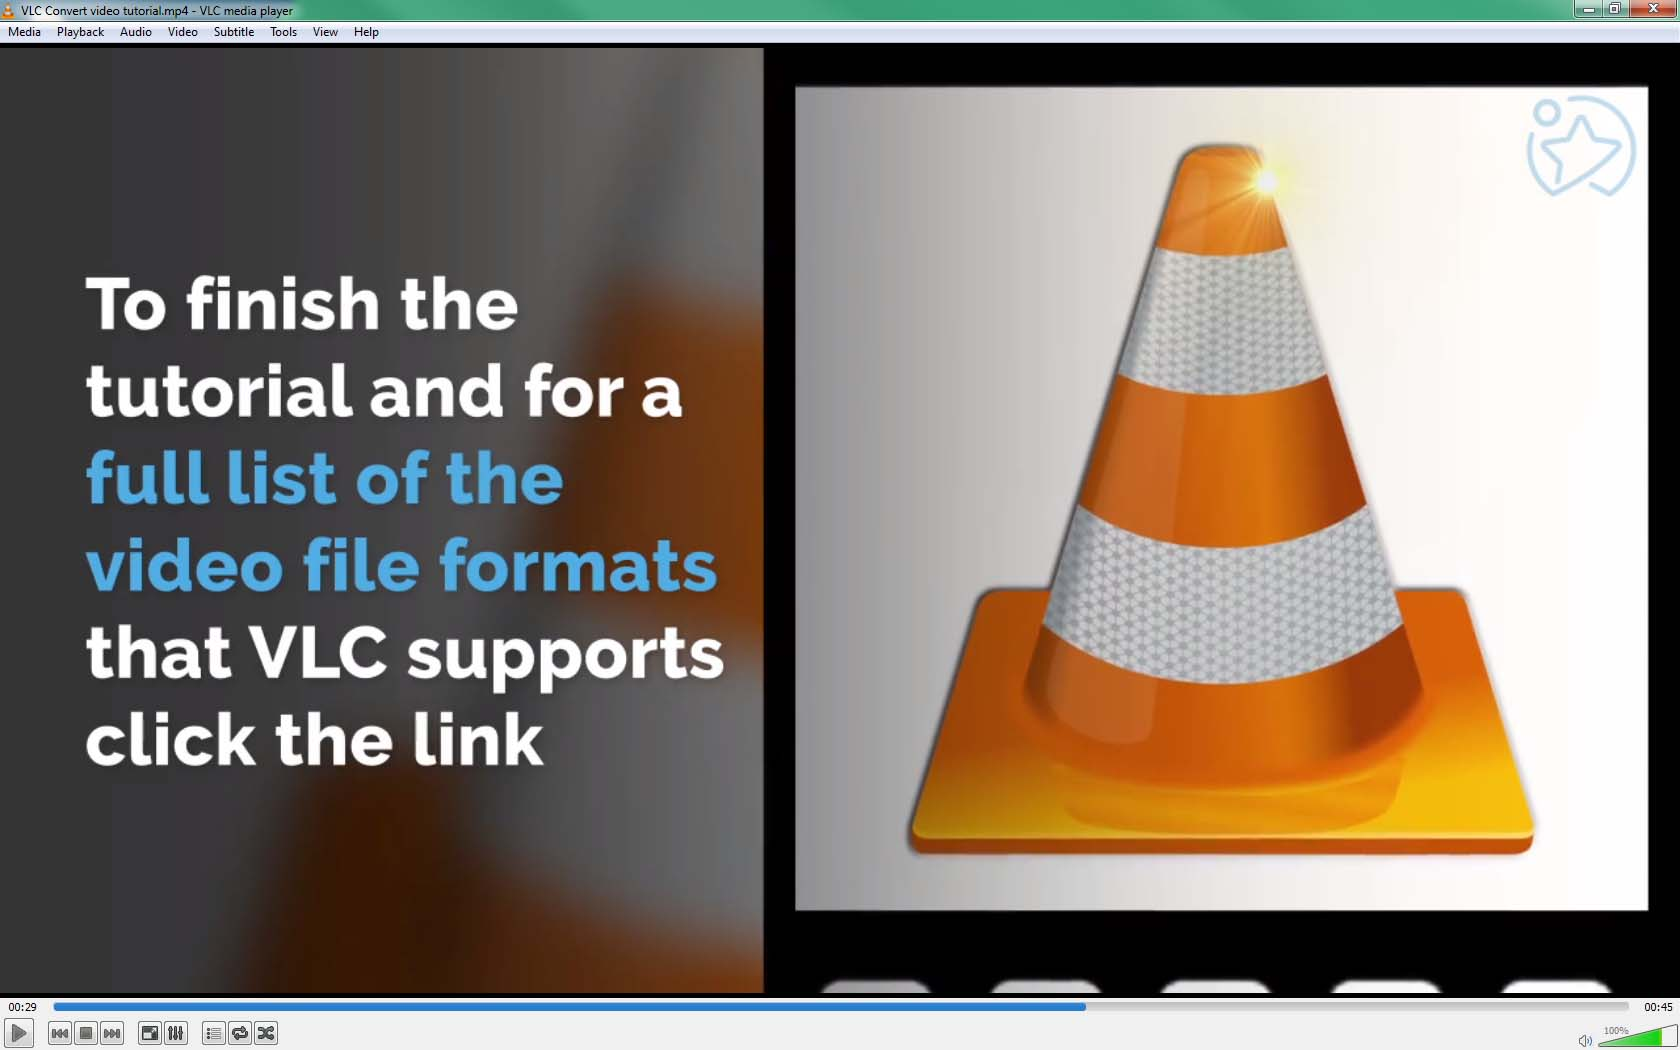 Get More With These 5 Expert Hacks for VLC Player